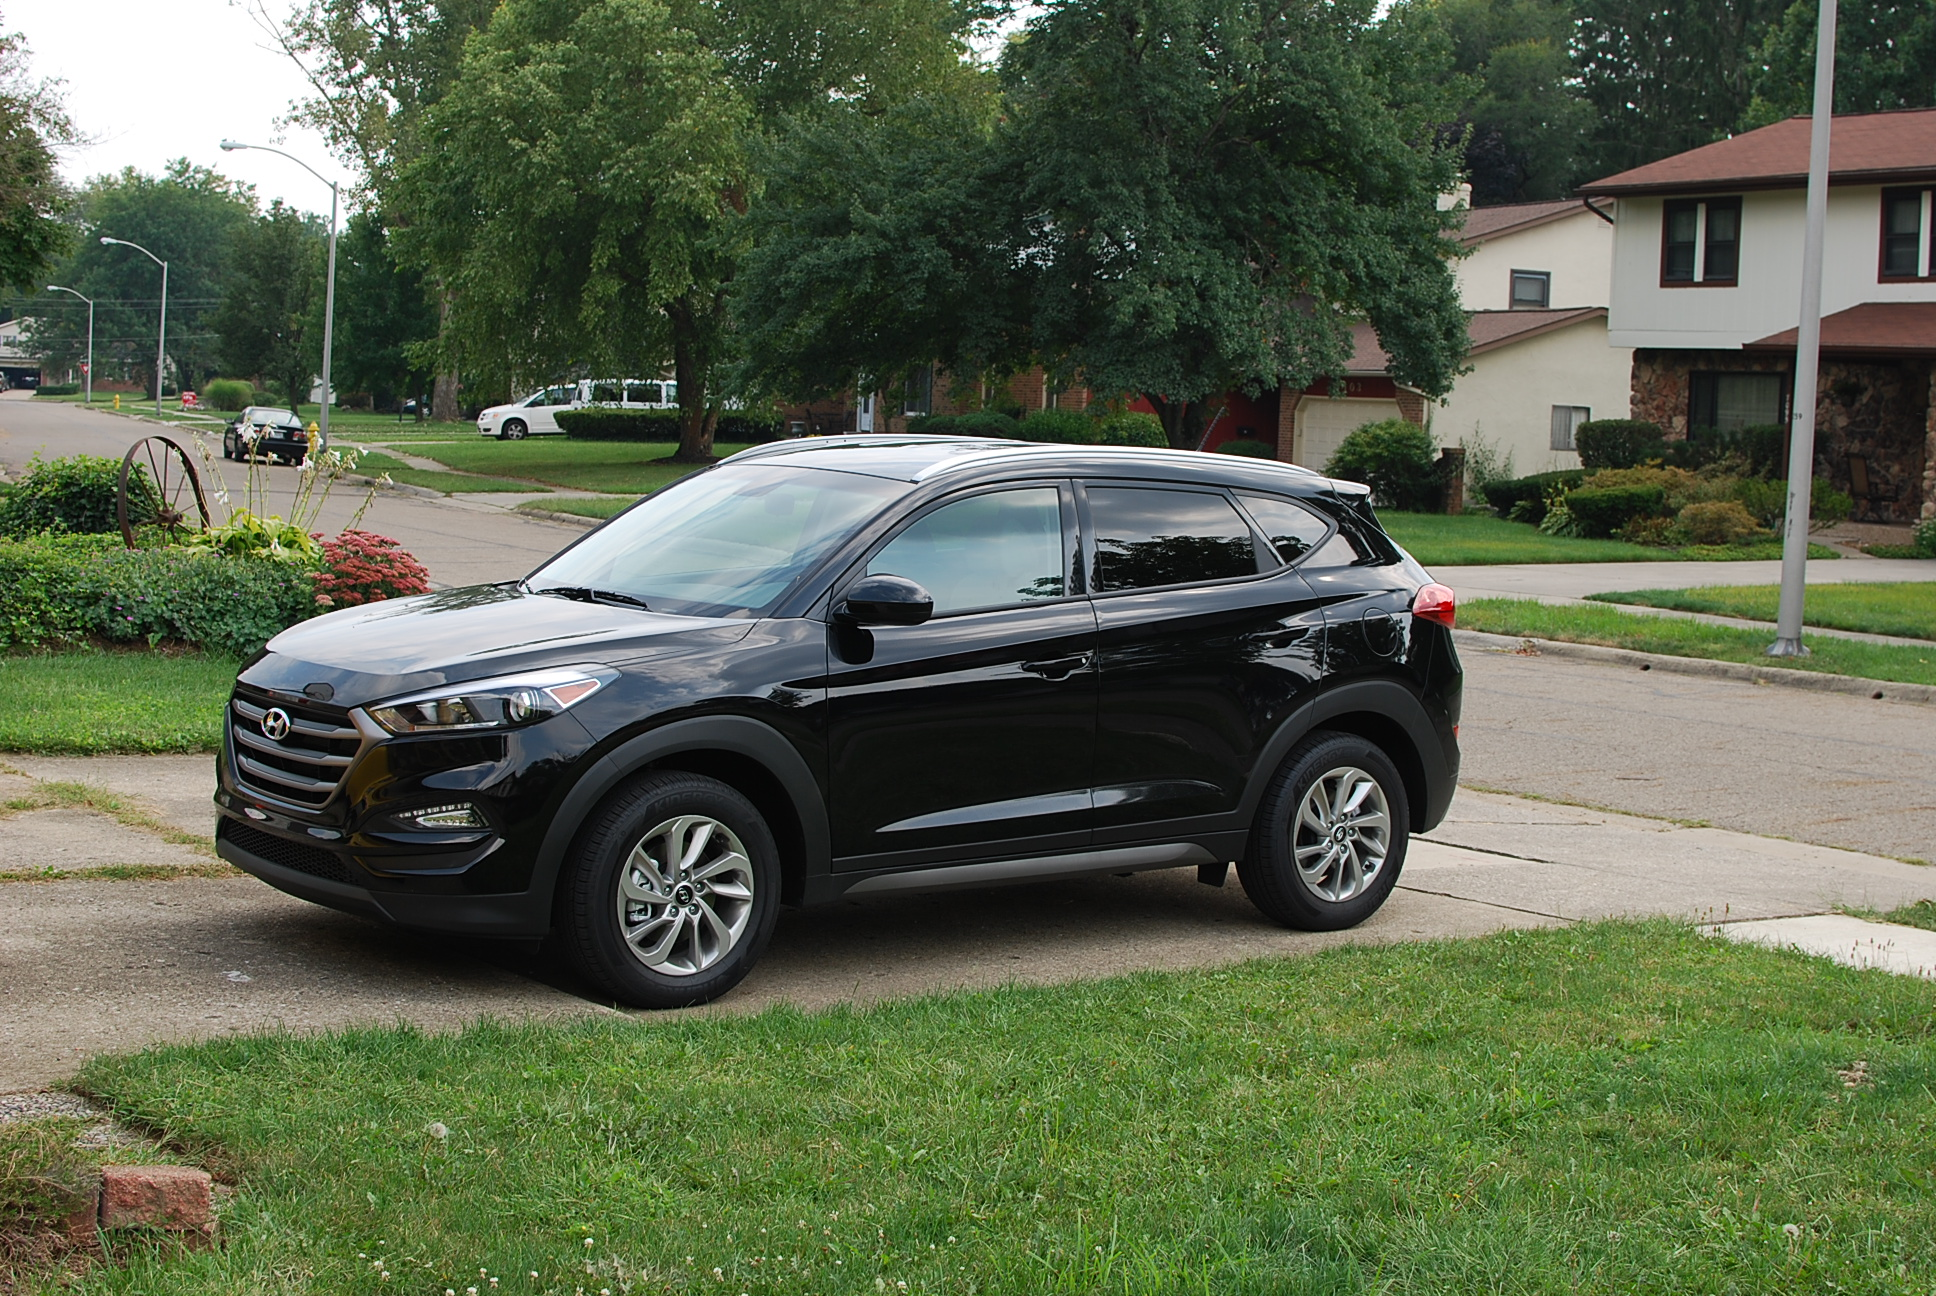 My Week With the Hyundai Tucson